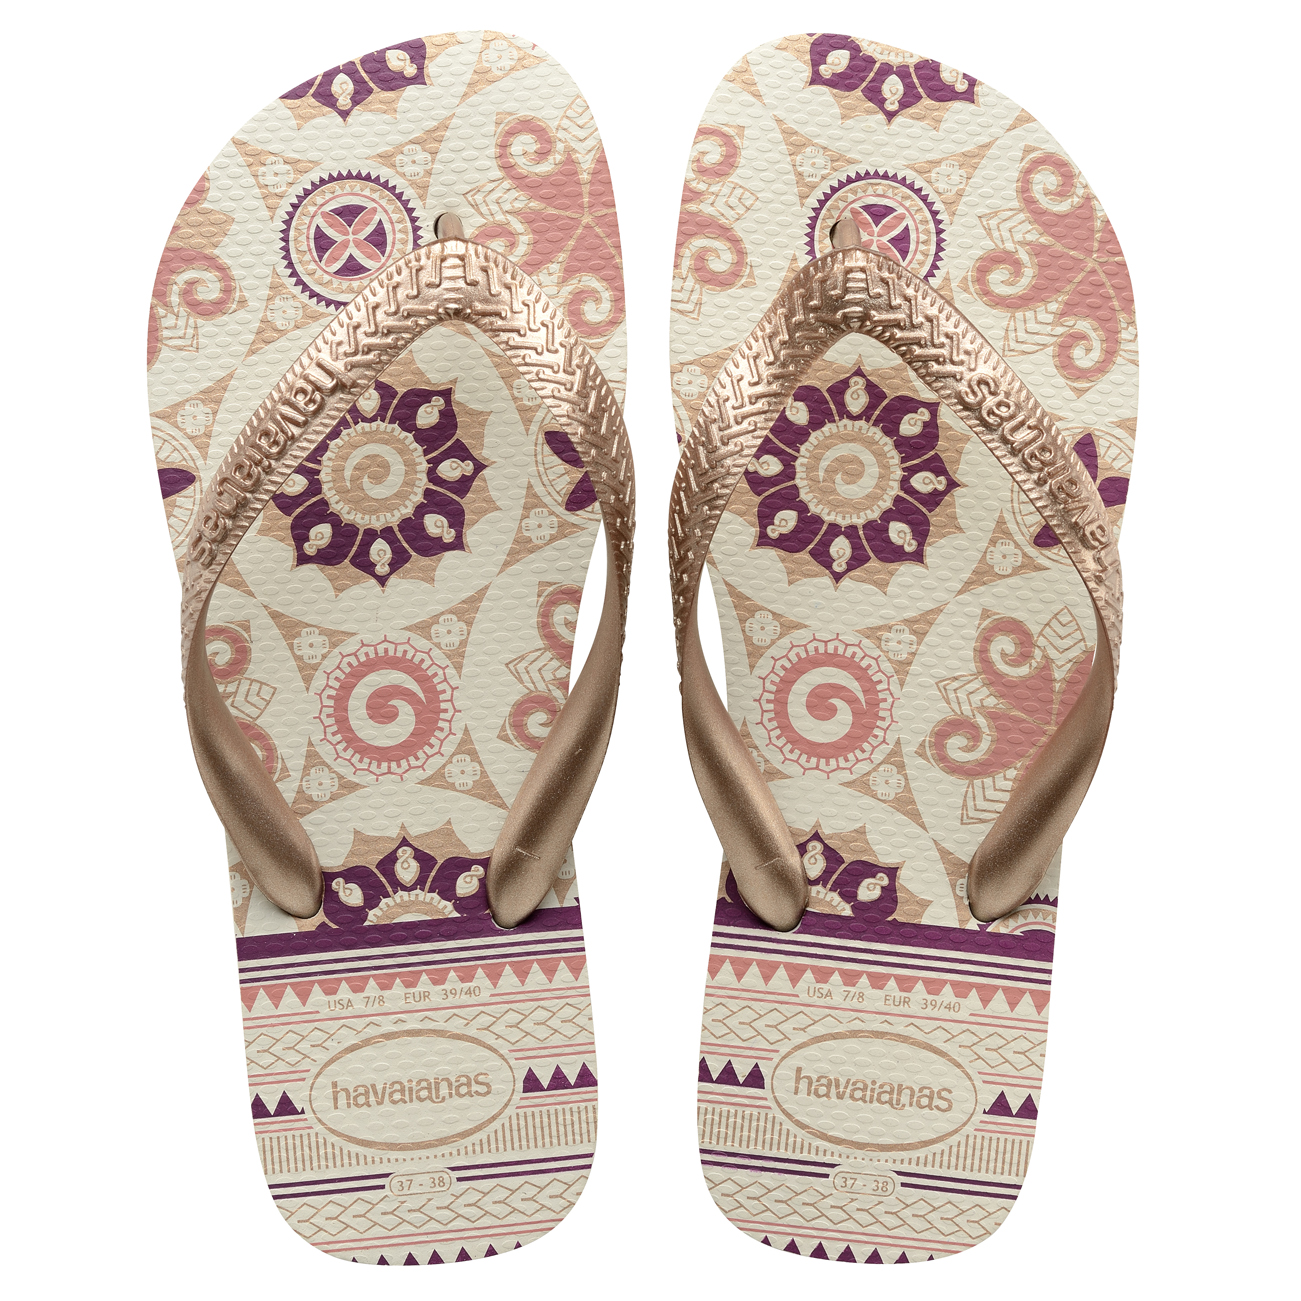 718af672d3a1b Ladies Havaianas Spring Sandal Beach Thong Toe Post Holiday Flip Flops All  Sizes